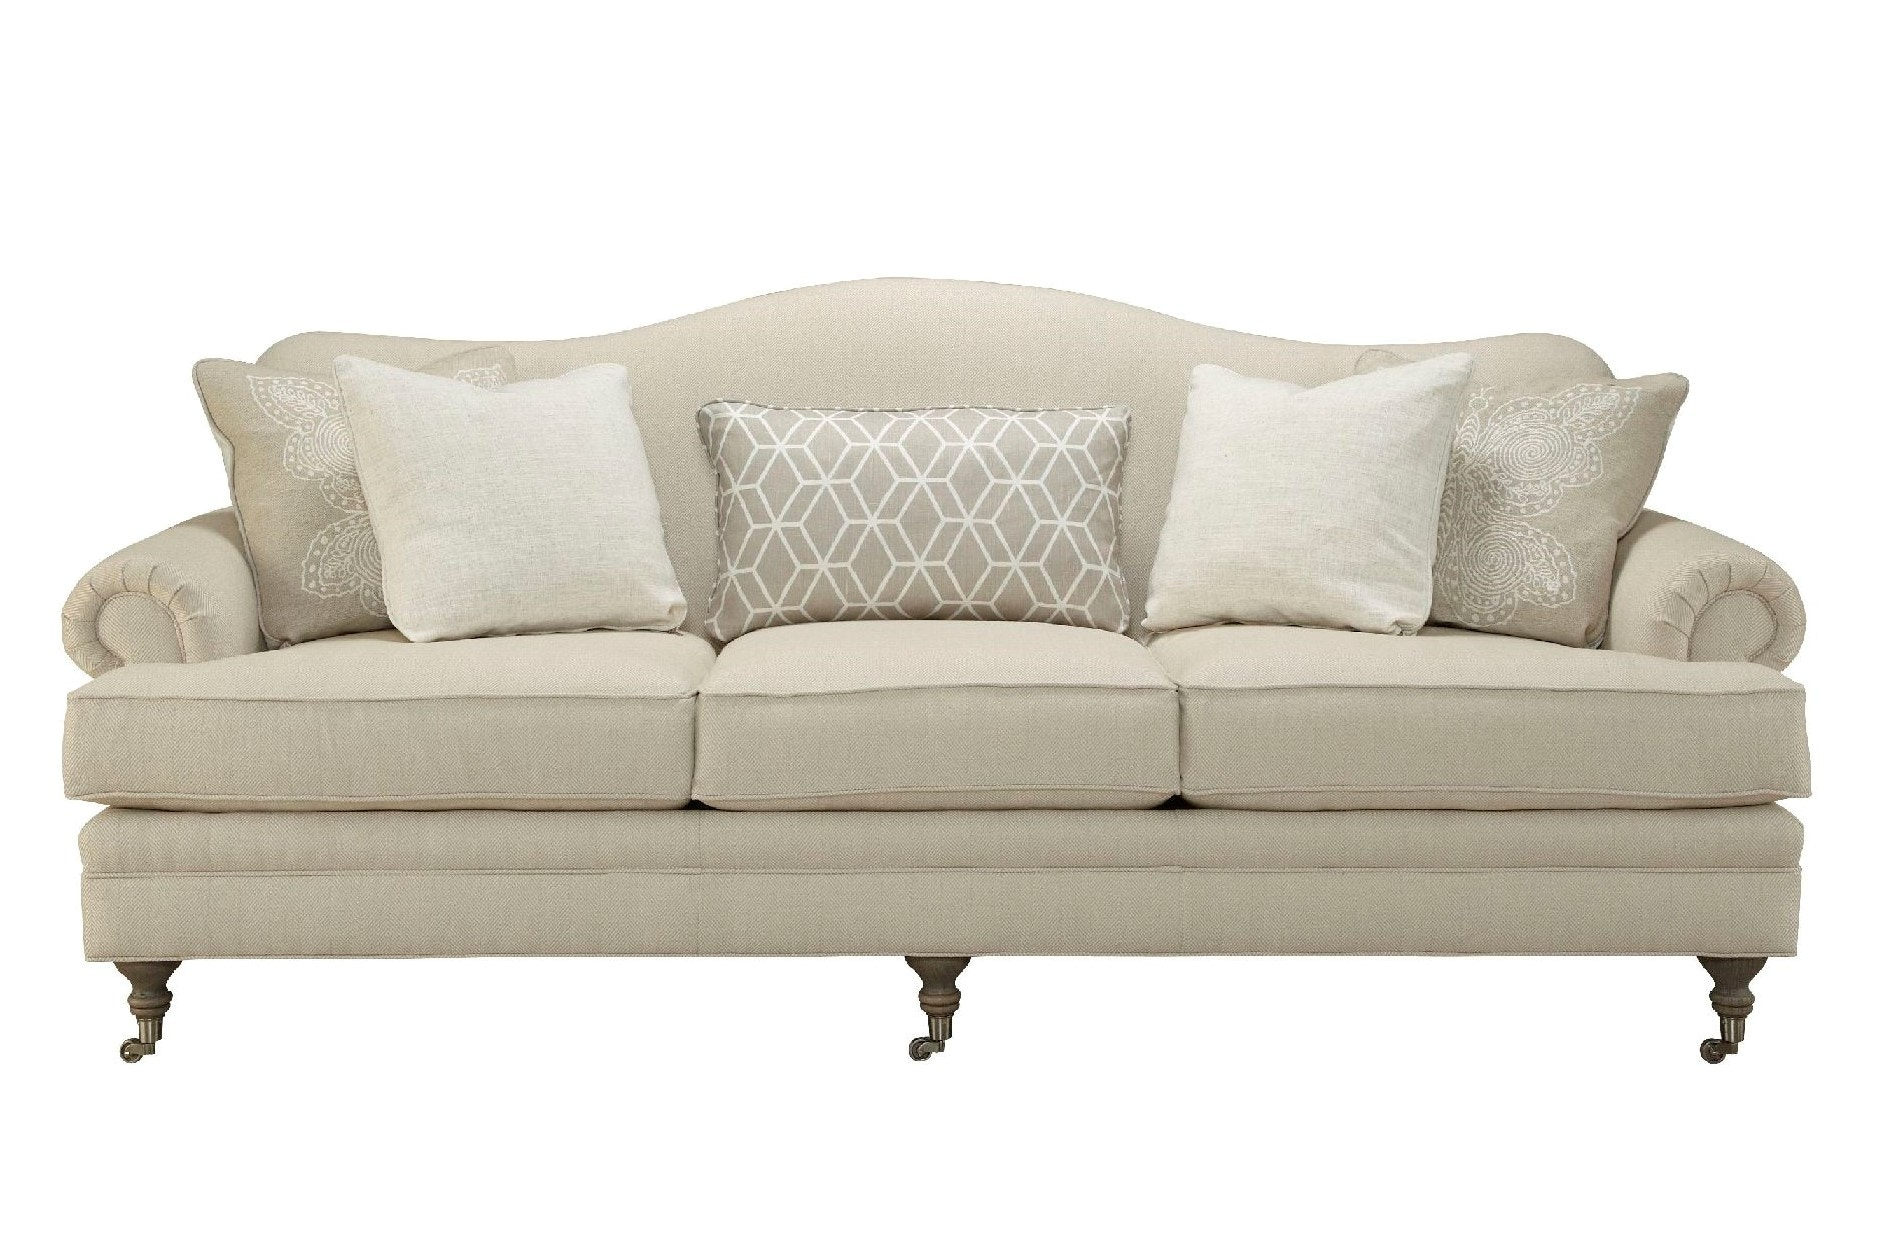 Southern Furniture Living Room Molly Sofa 26091 Hickory Furniture